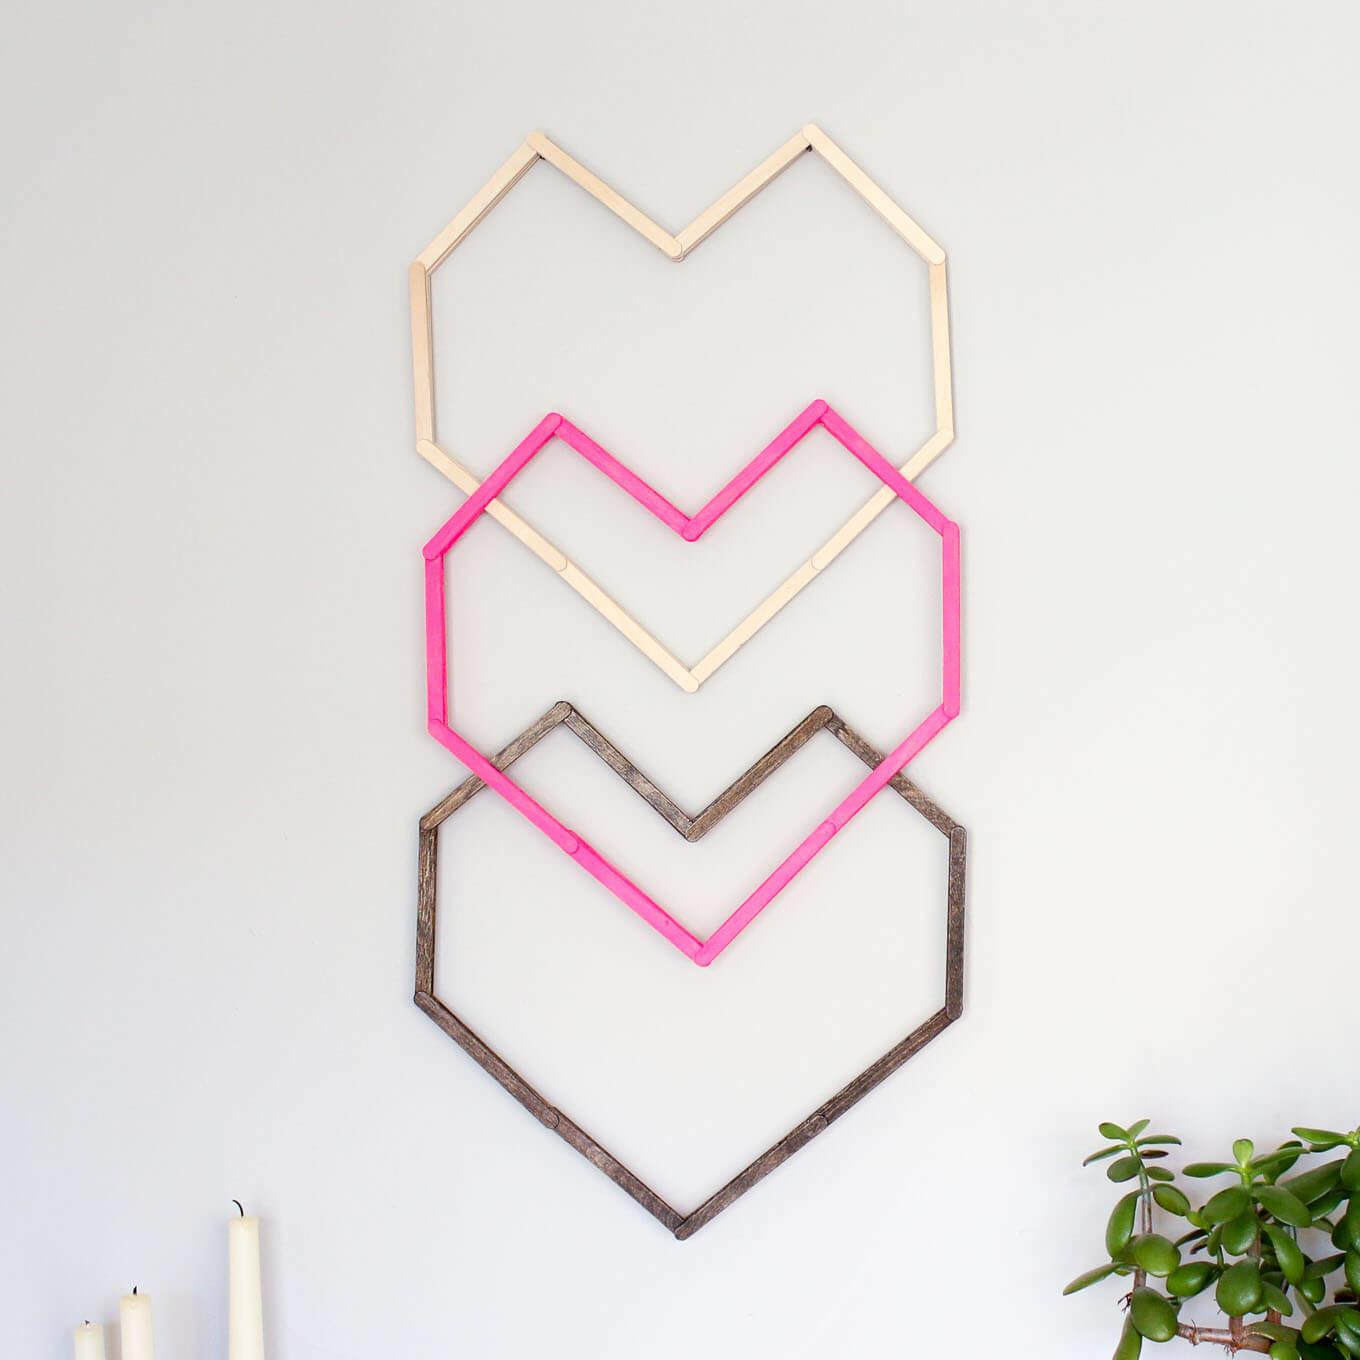 Geometric Heart Diy Wall Art Popsicle Sticks